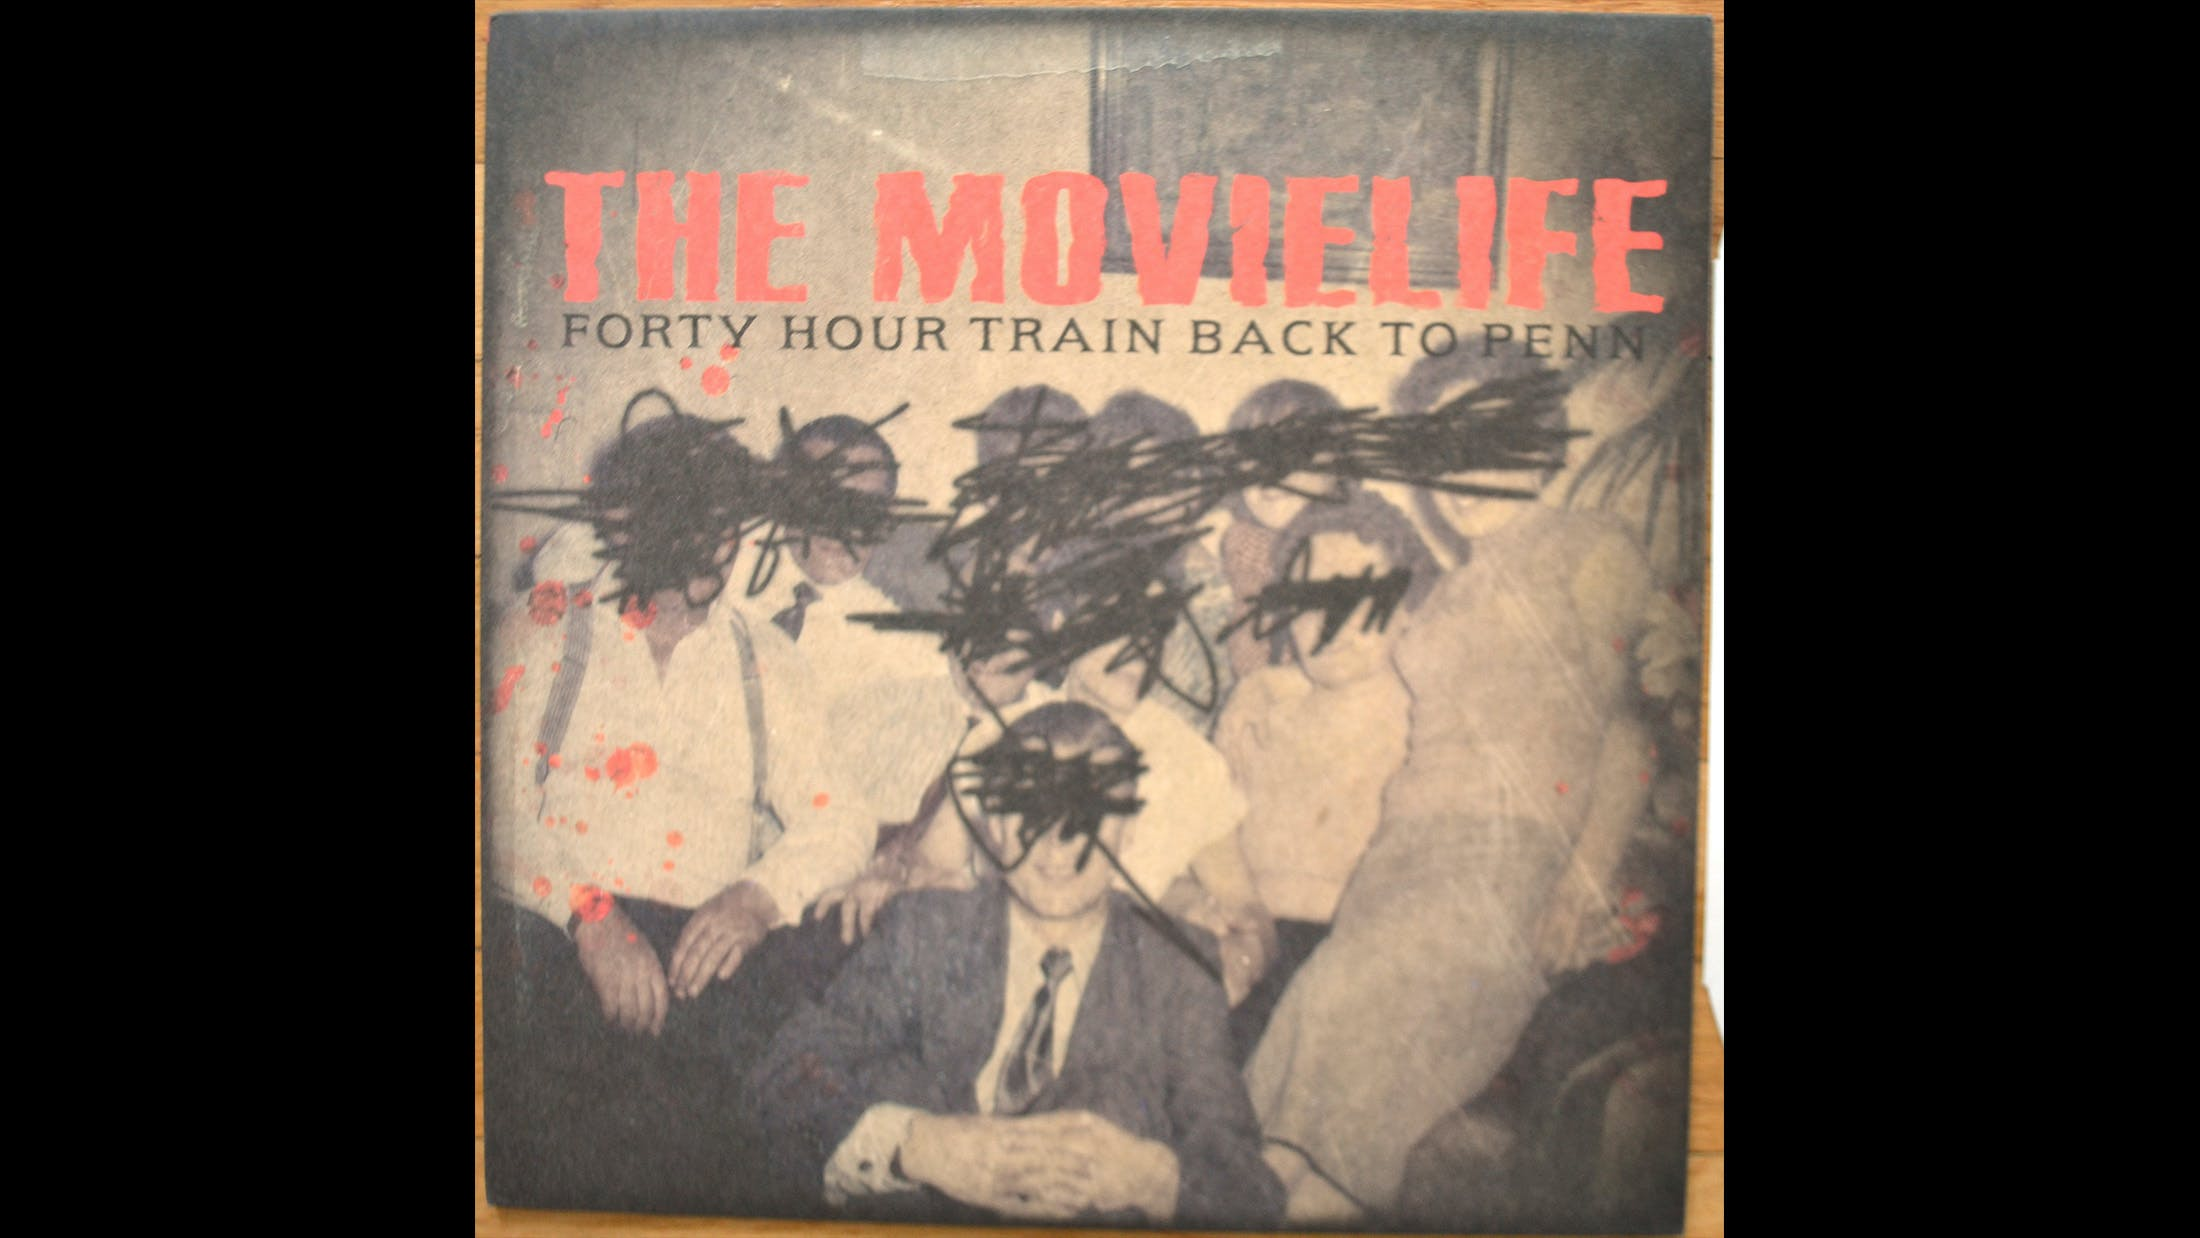 29. The Movielife - Forty Hour Train Back To Penn (2003)